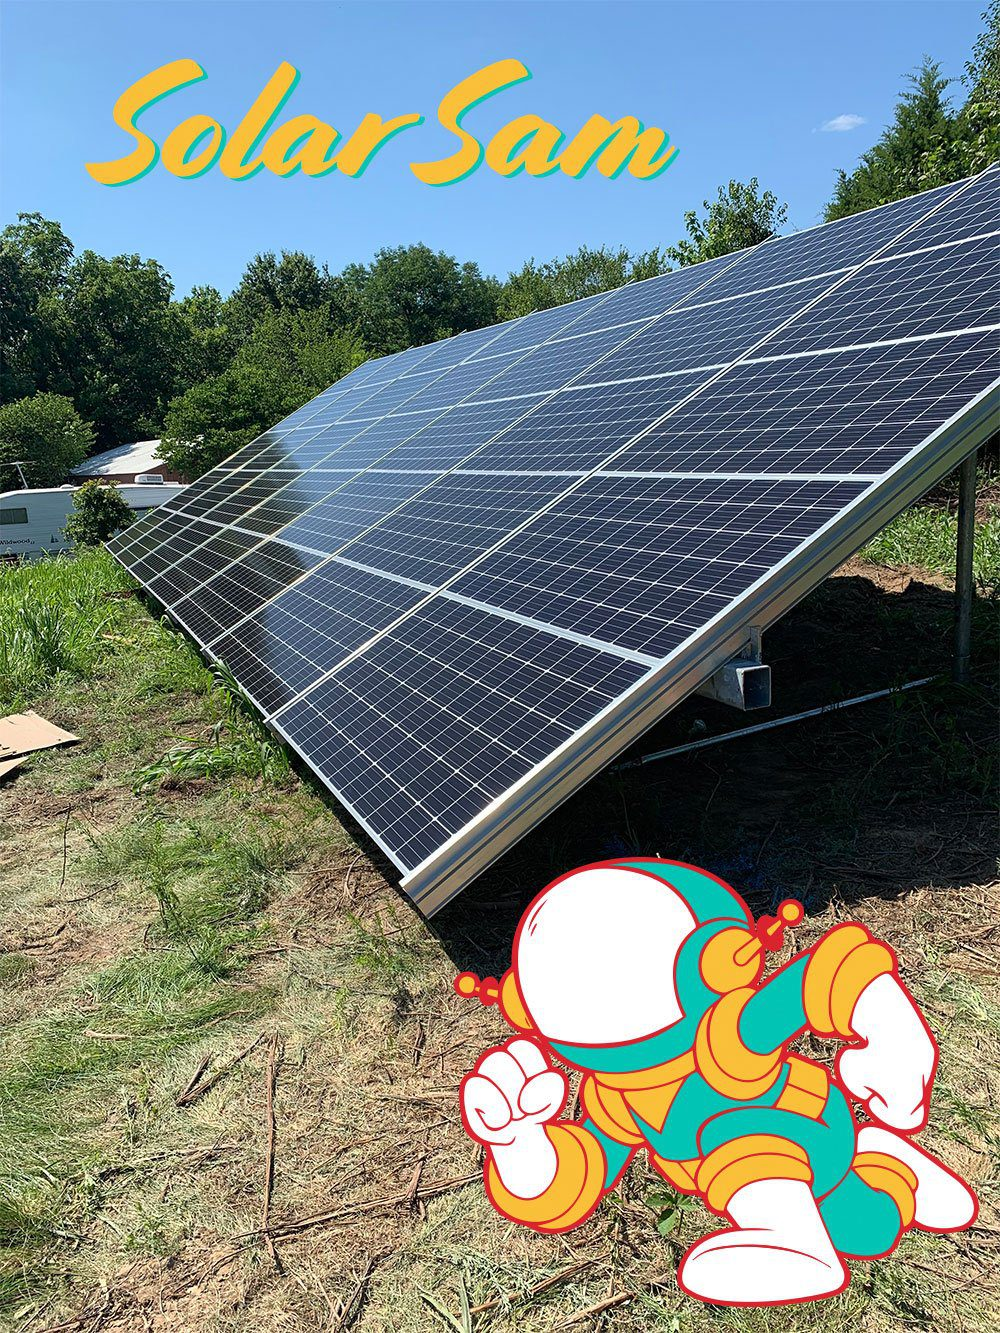 Photovoltaic Solar System Installation in Blue Springs MO by Solar Sam Professional Solar Panels Installers for Single Family House Ground Mounted